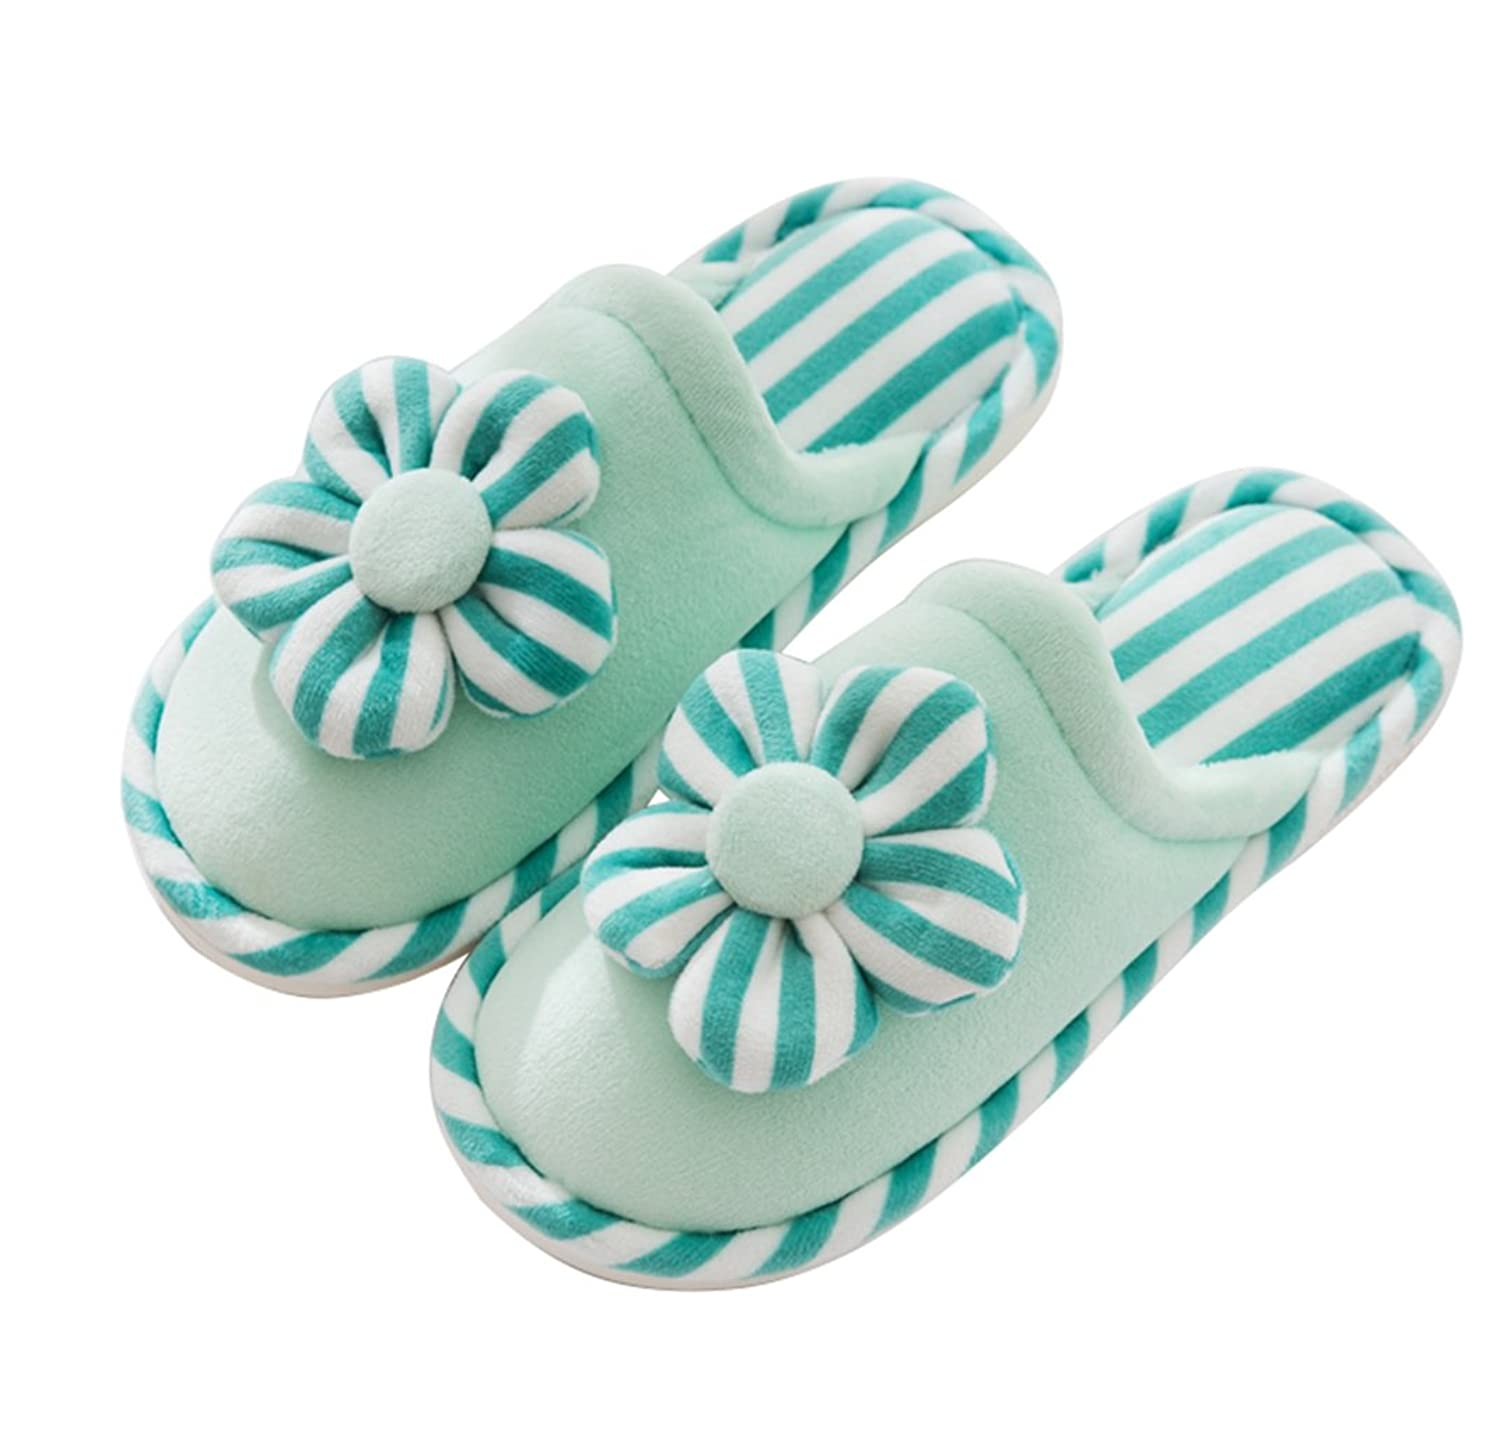 CN'Dragon Women Soft Lovely Striped Flower Plush Slippers Men Button Slippers Couple Cotton Slippers